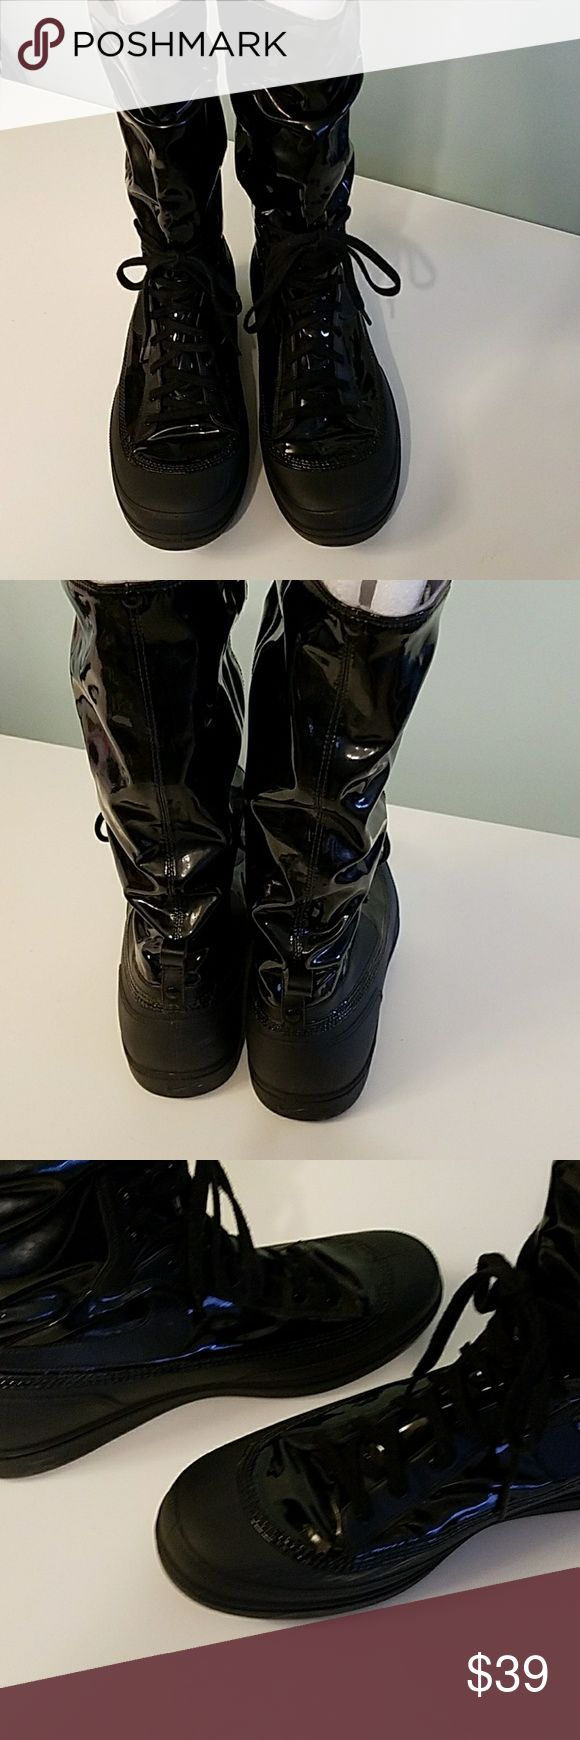 Nike Black Storm Warrior Hi Fashion Sneaker Shoe Size W's 12.  Product number 407482 001.  Made in China.  Barely worn but there are a couple of scuff marks on the right shoe.  Clean inside and out.  A friend who works at Nike says this style was part of a sample line here in the Portland Oregon area.  See photos for actual condition. Nike Shoes Lace Up Boots